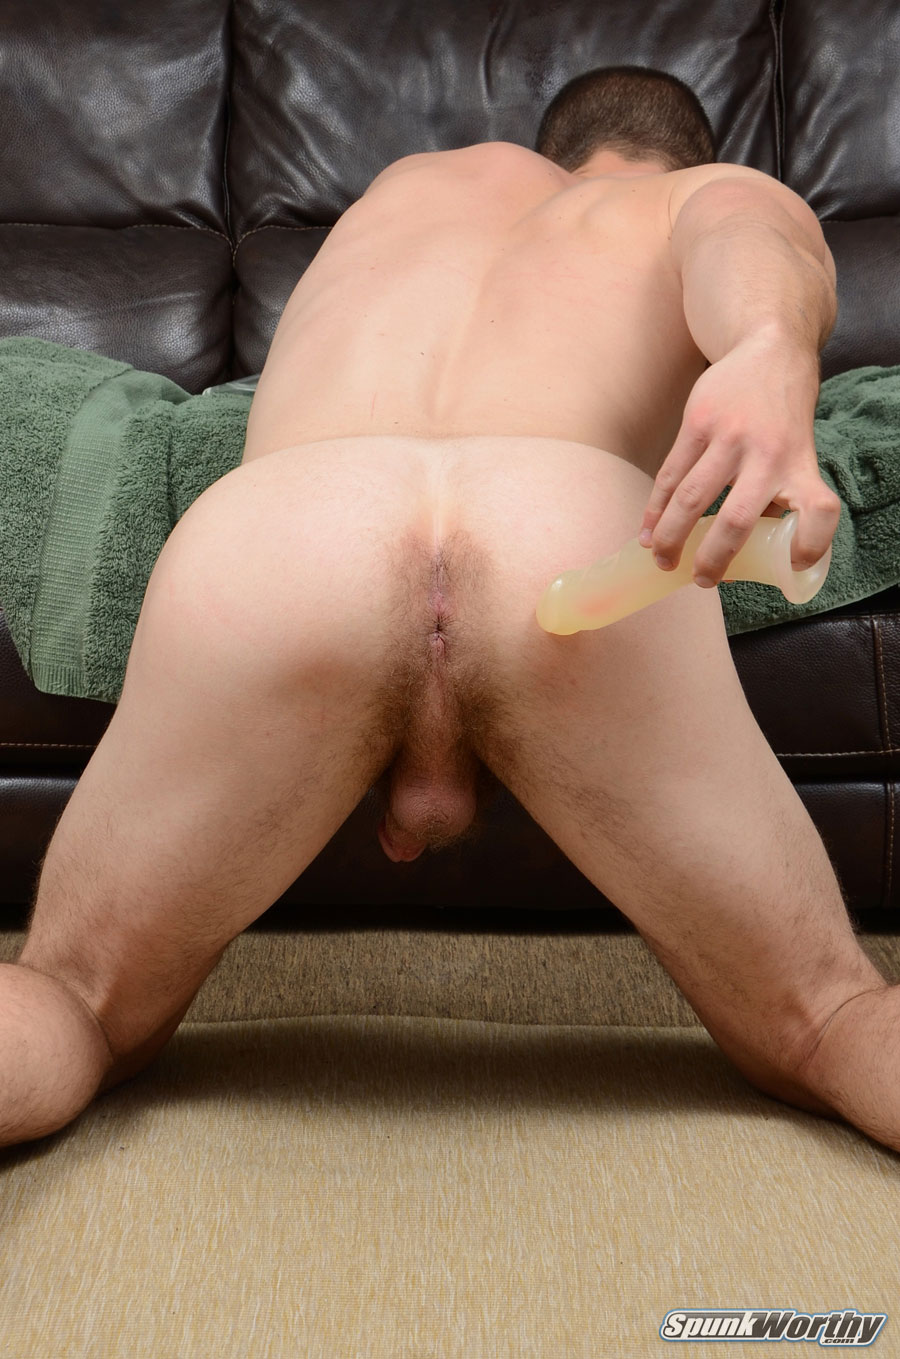 SpunkWorthy Dean Straight Marine Uses A Dildo On Hairy Ass Amateur Gay Porn 09 Ripped Marine Fucks His Straight Hairy Ass With A Dildo